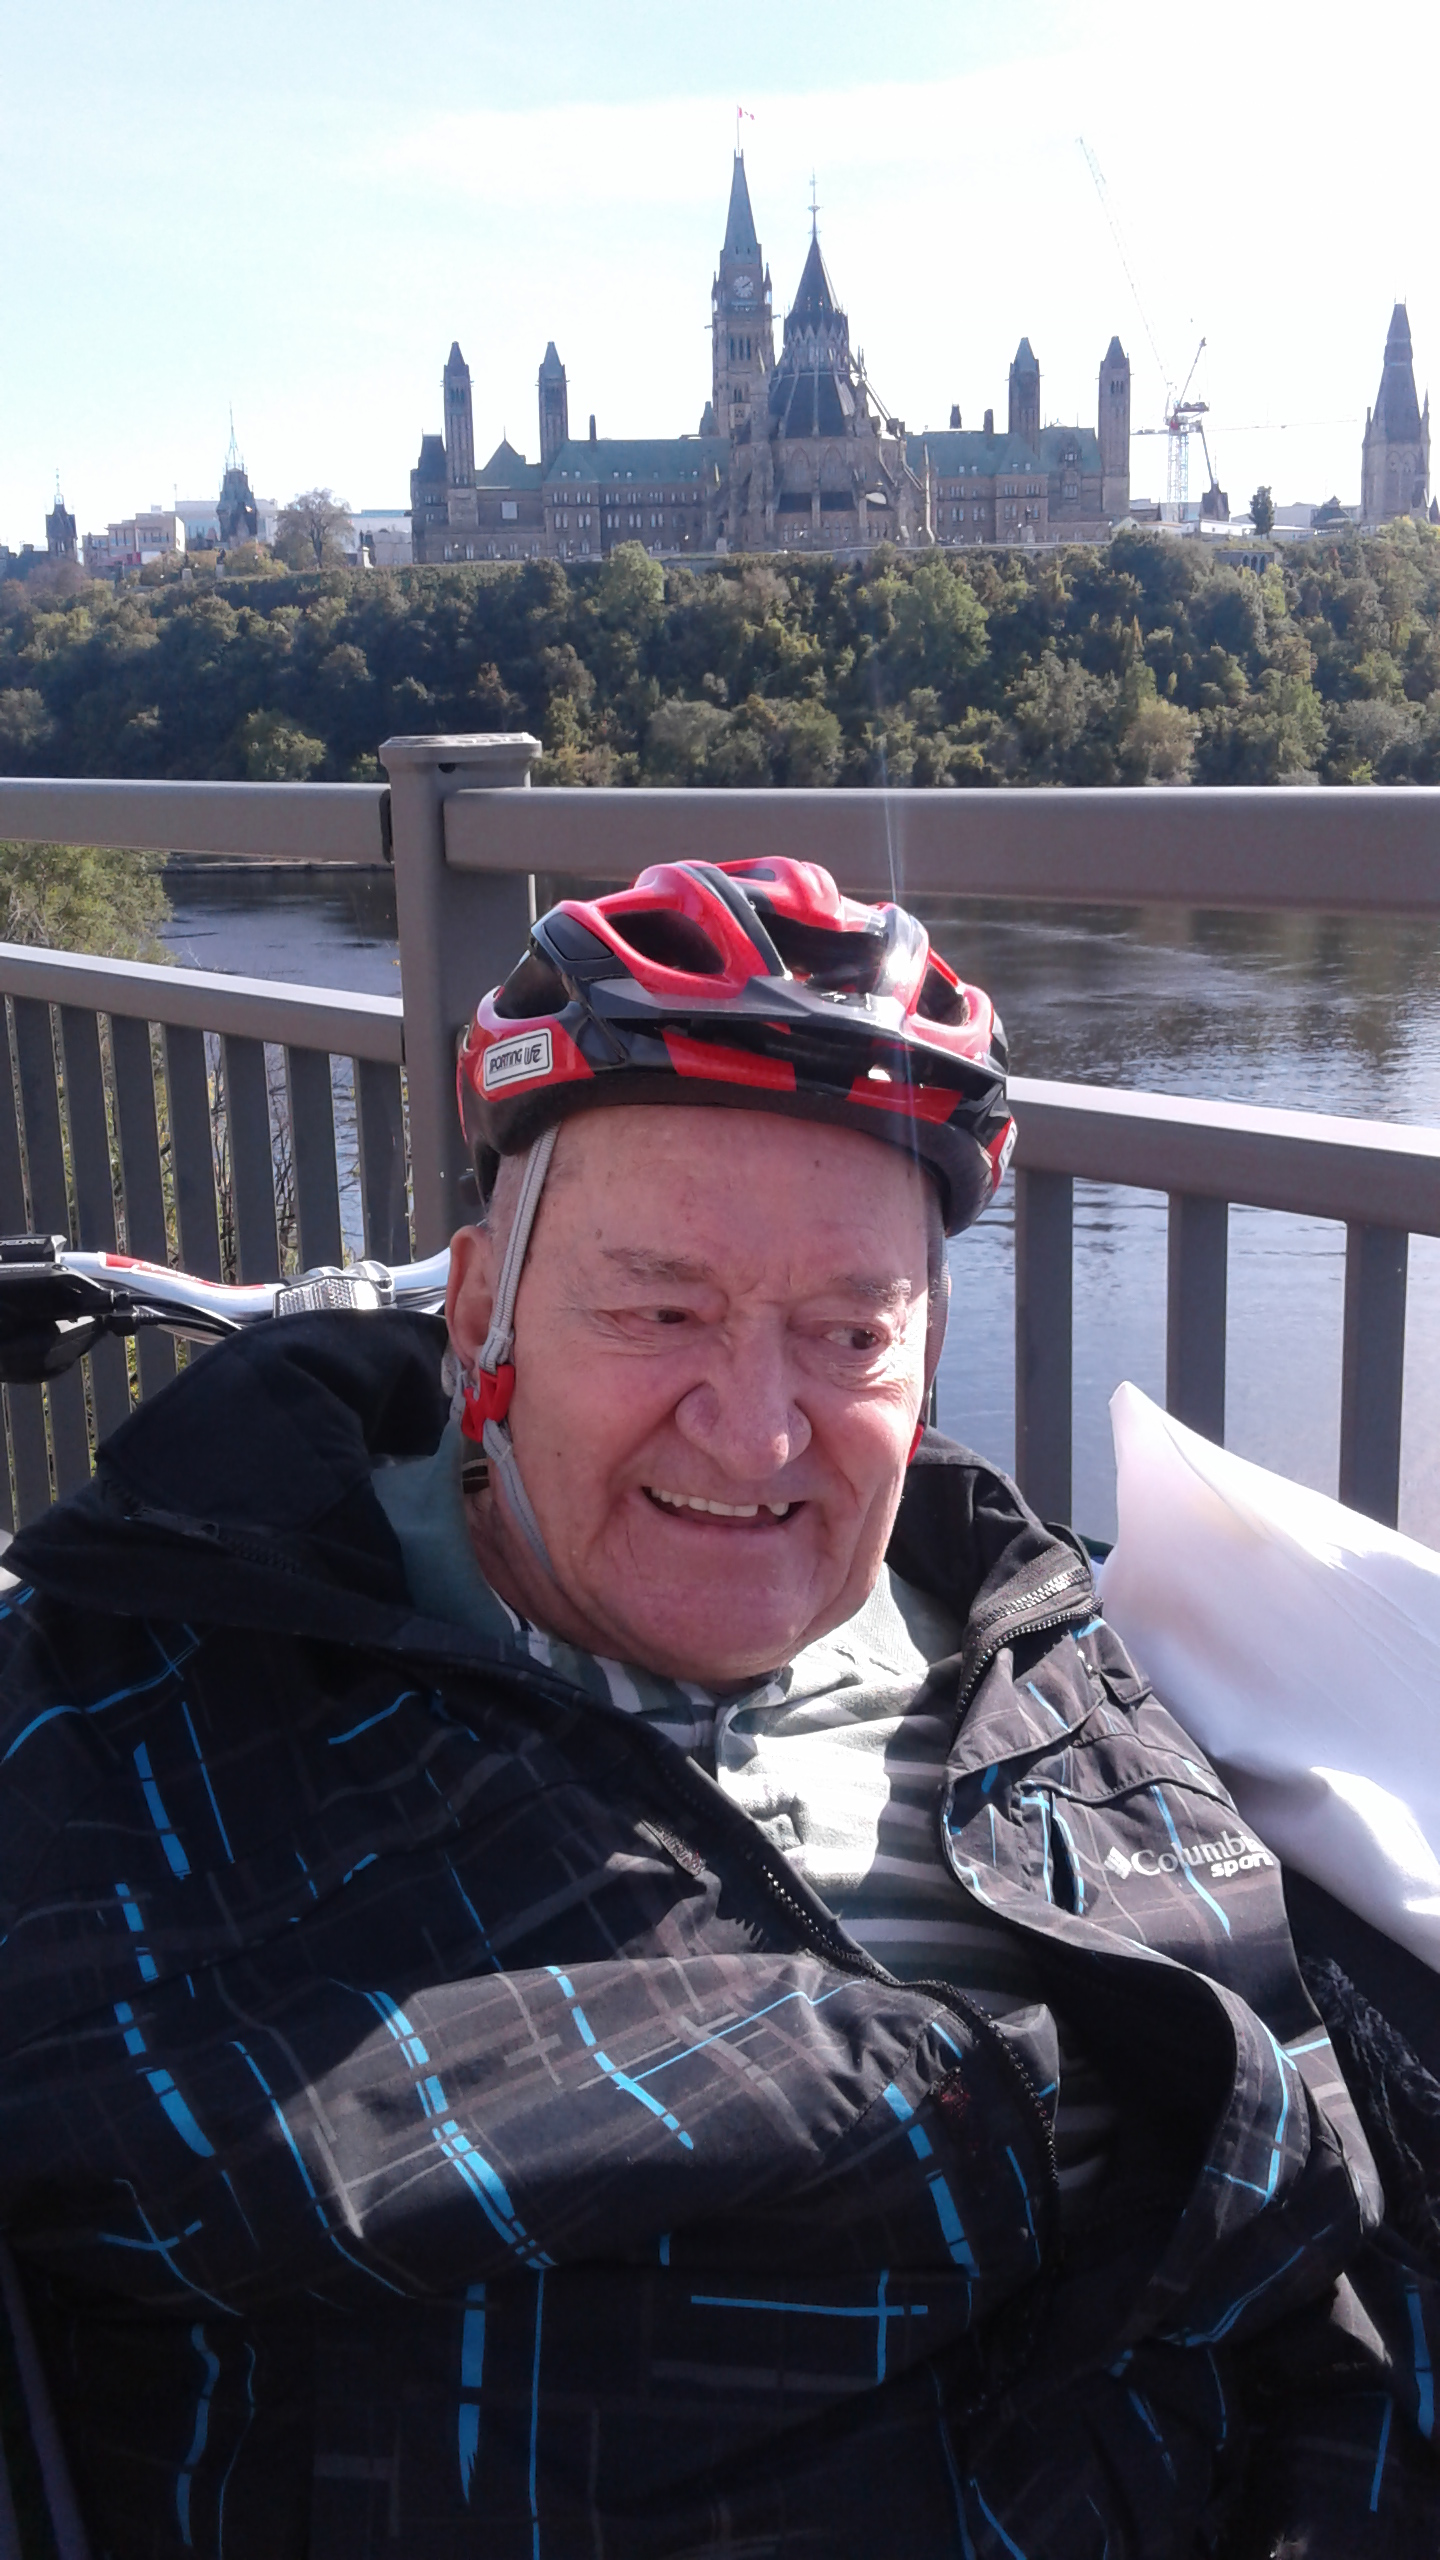 Senior in Cycling Without Age bike overlooking Parliament.